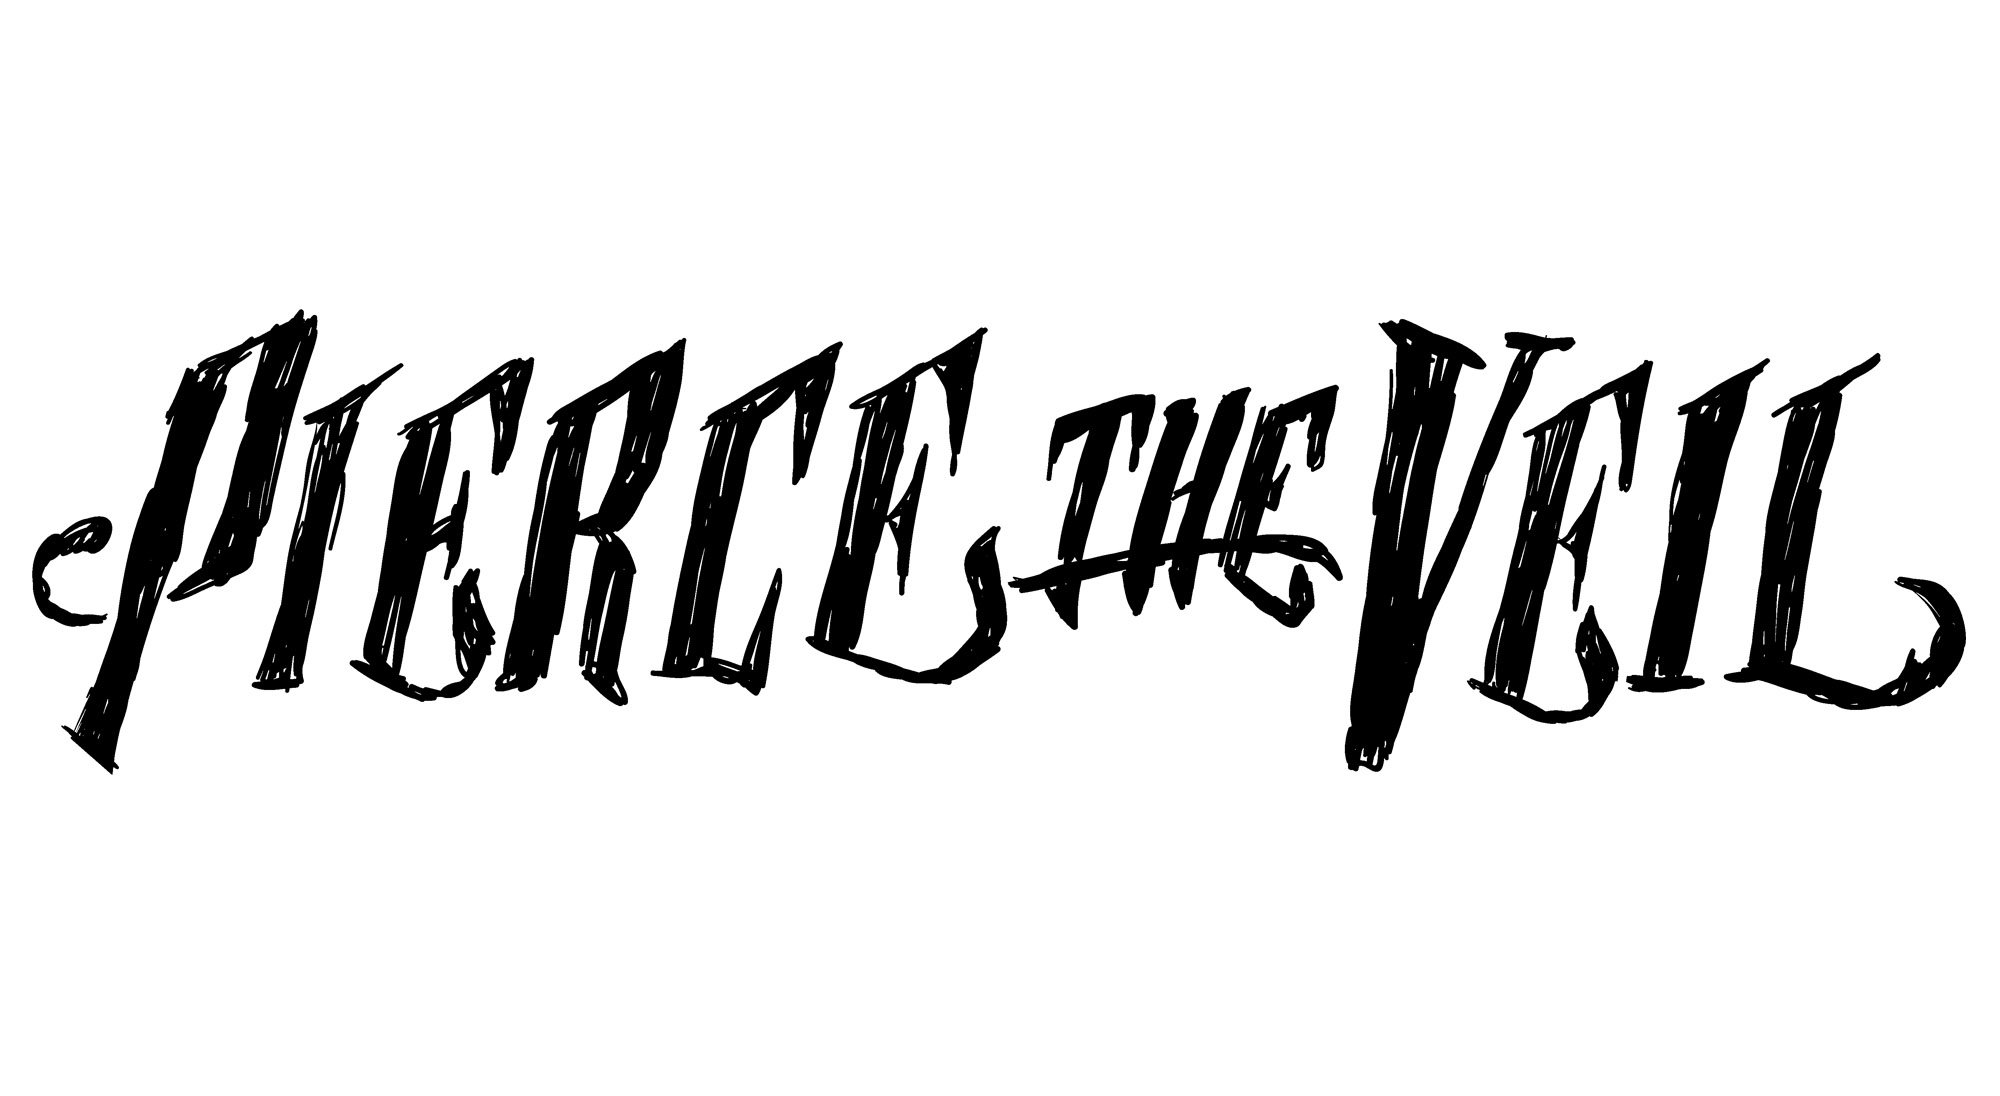 pierce the veil logo pierce the veil symbol meaning